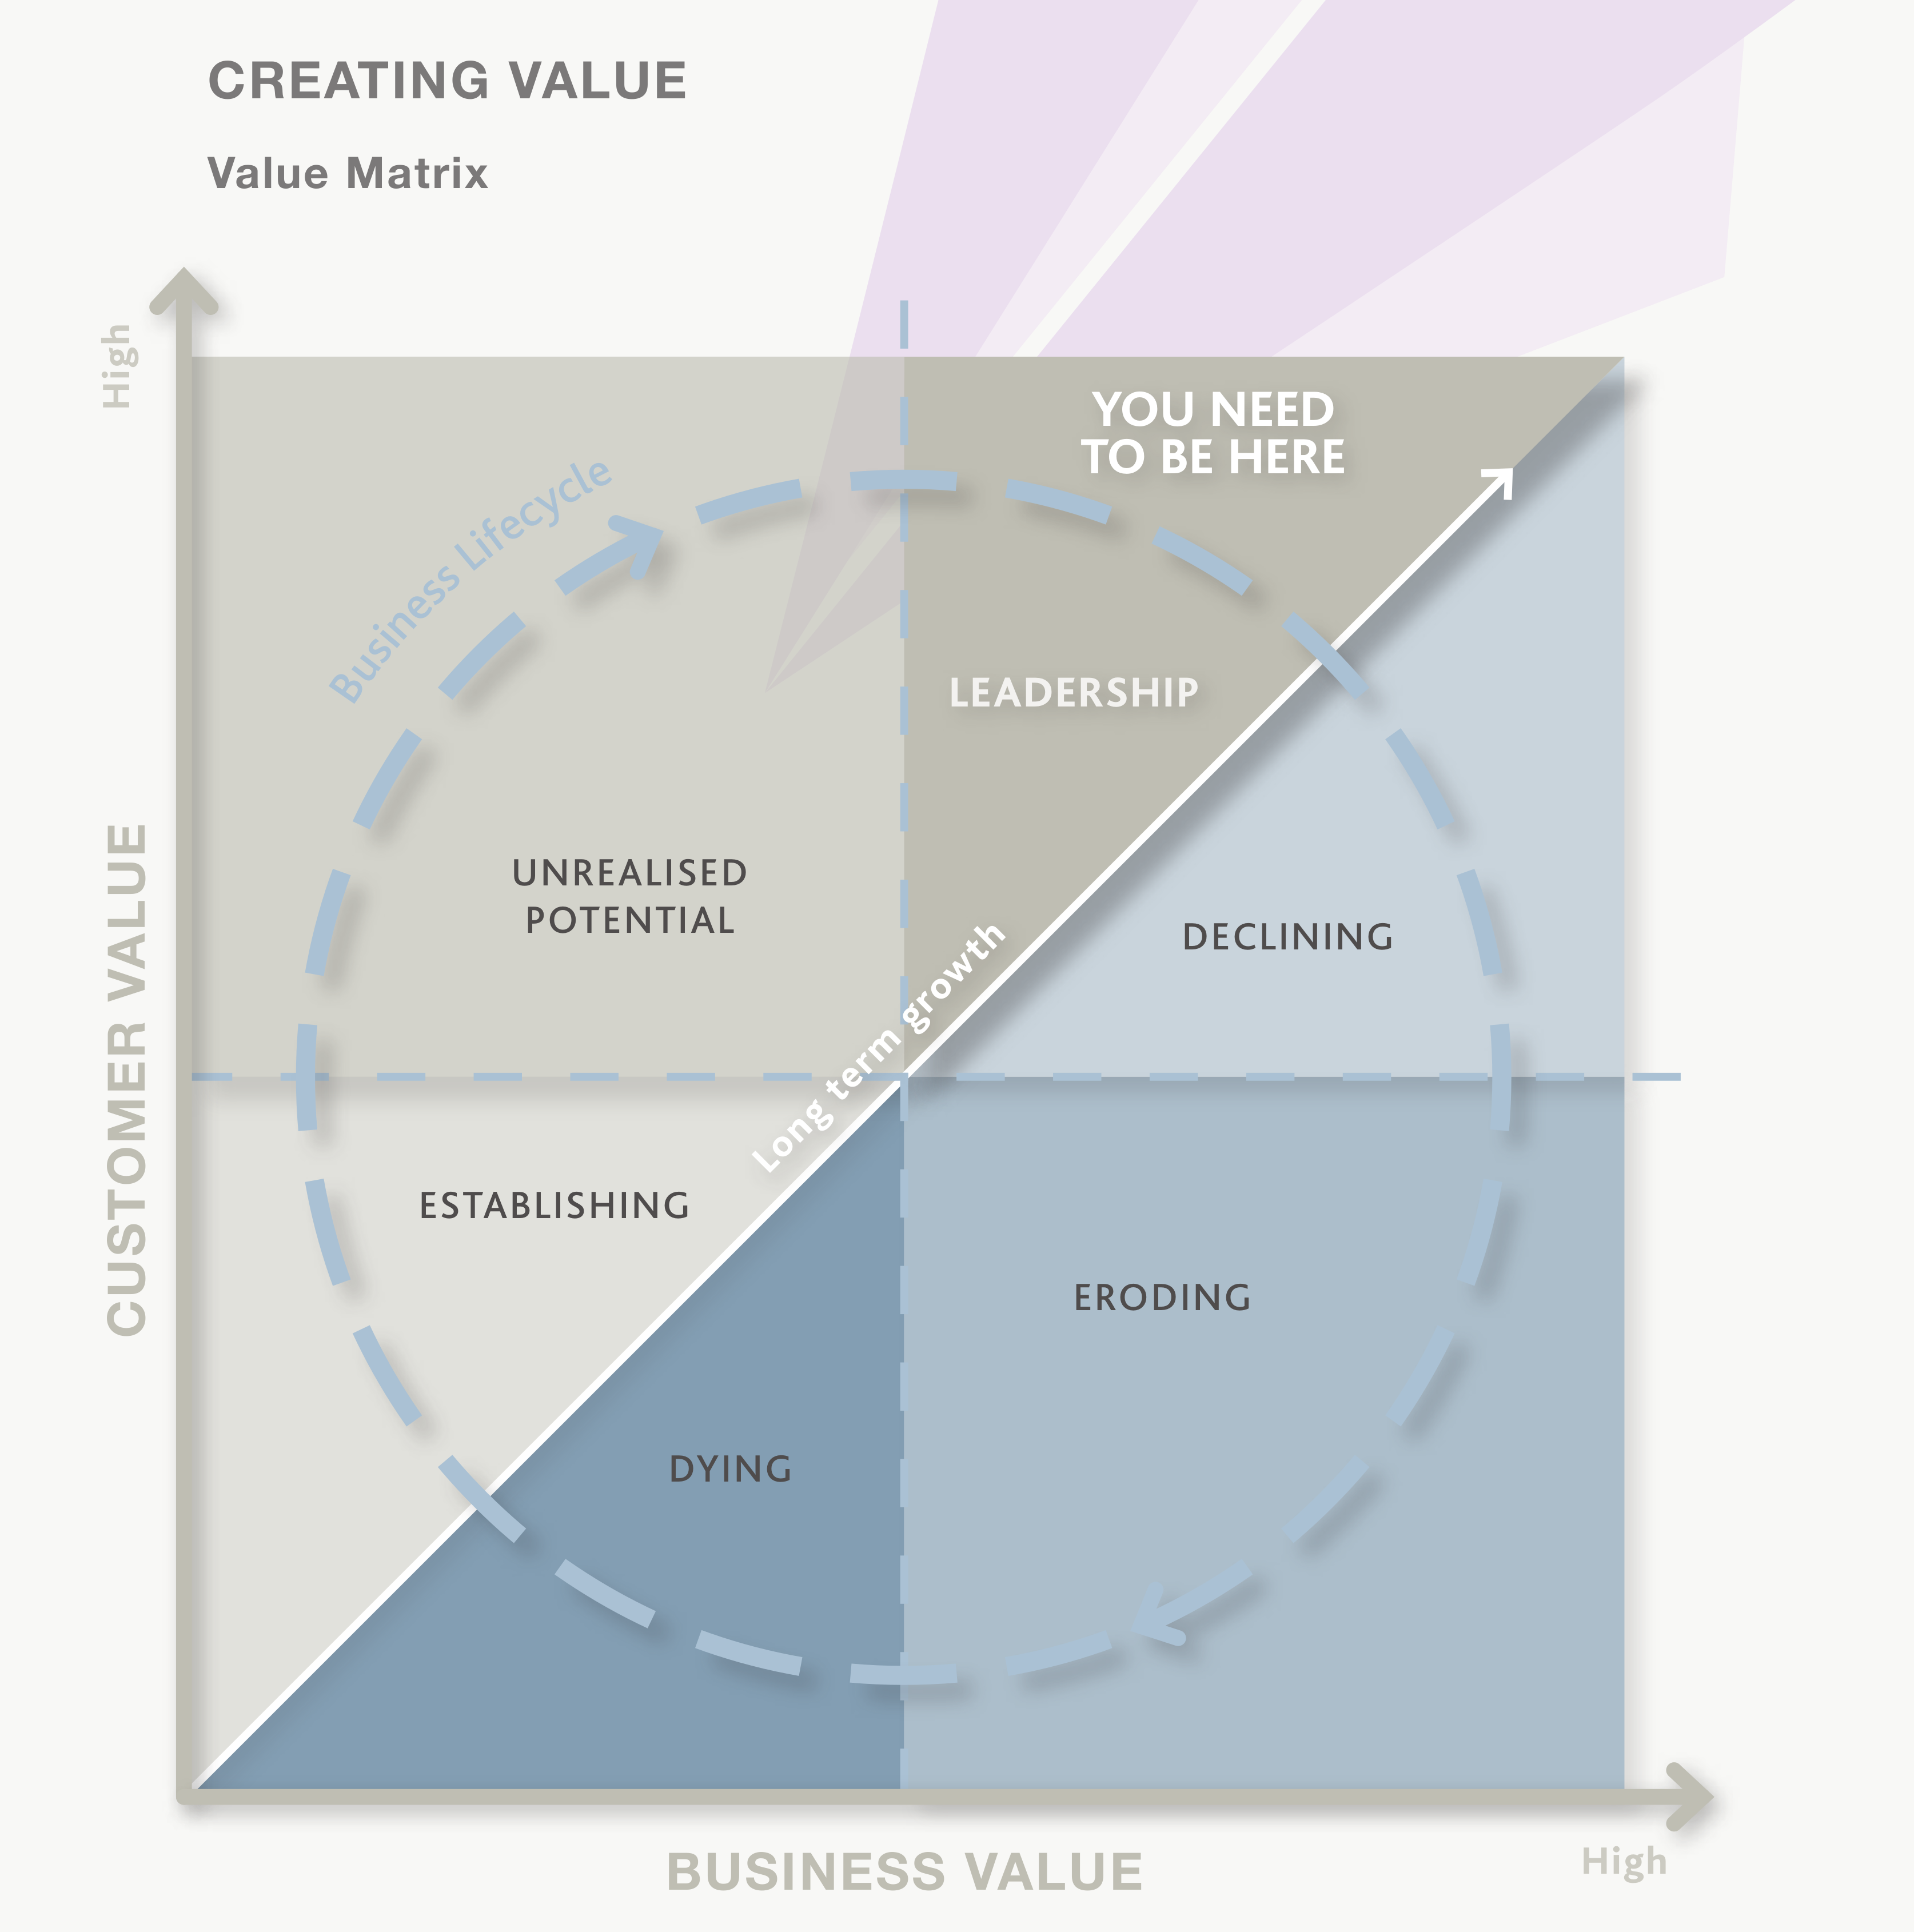 content/images/entrepreneurial-innovation/business-lifecycle.png